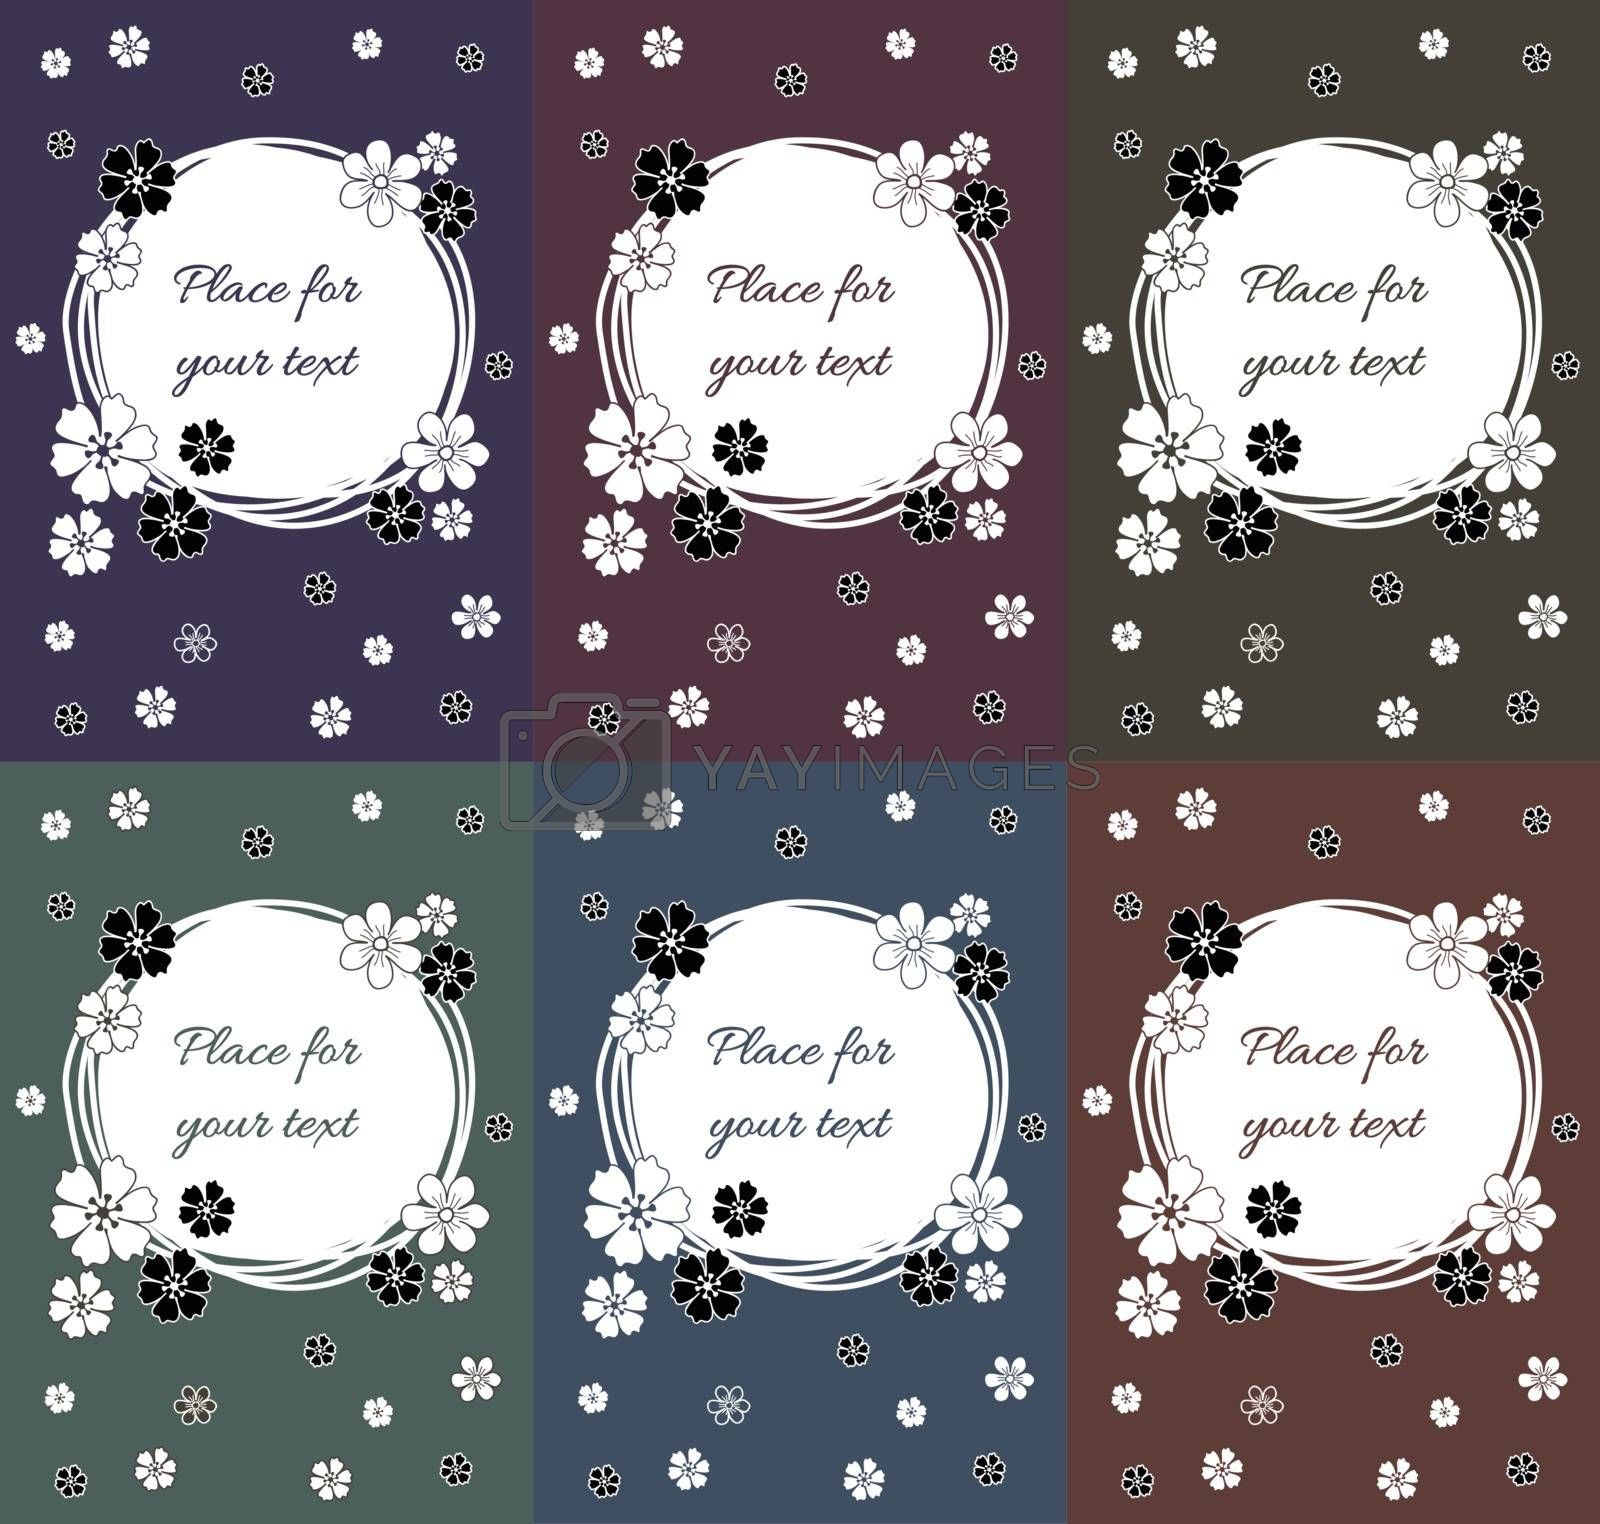 Floral greeting card design collection with black and white hand drawn spring flowers in retro vintage colors. Circular copy space. EPS 10 vector illustration